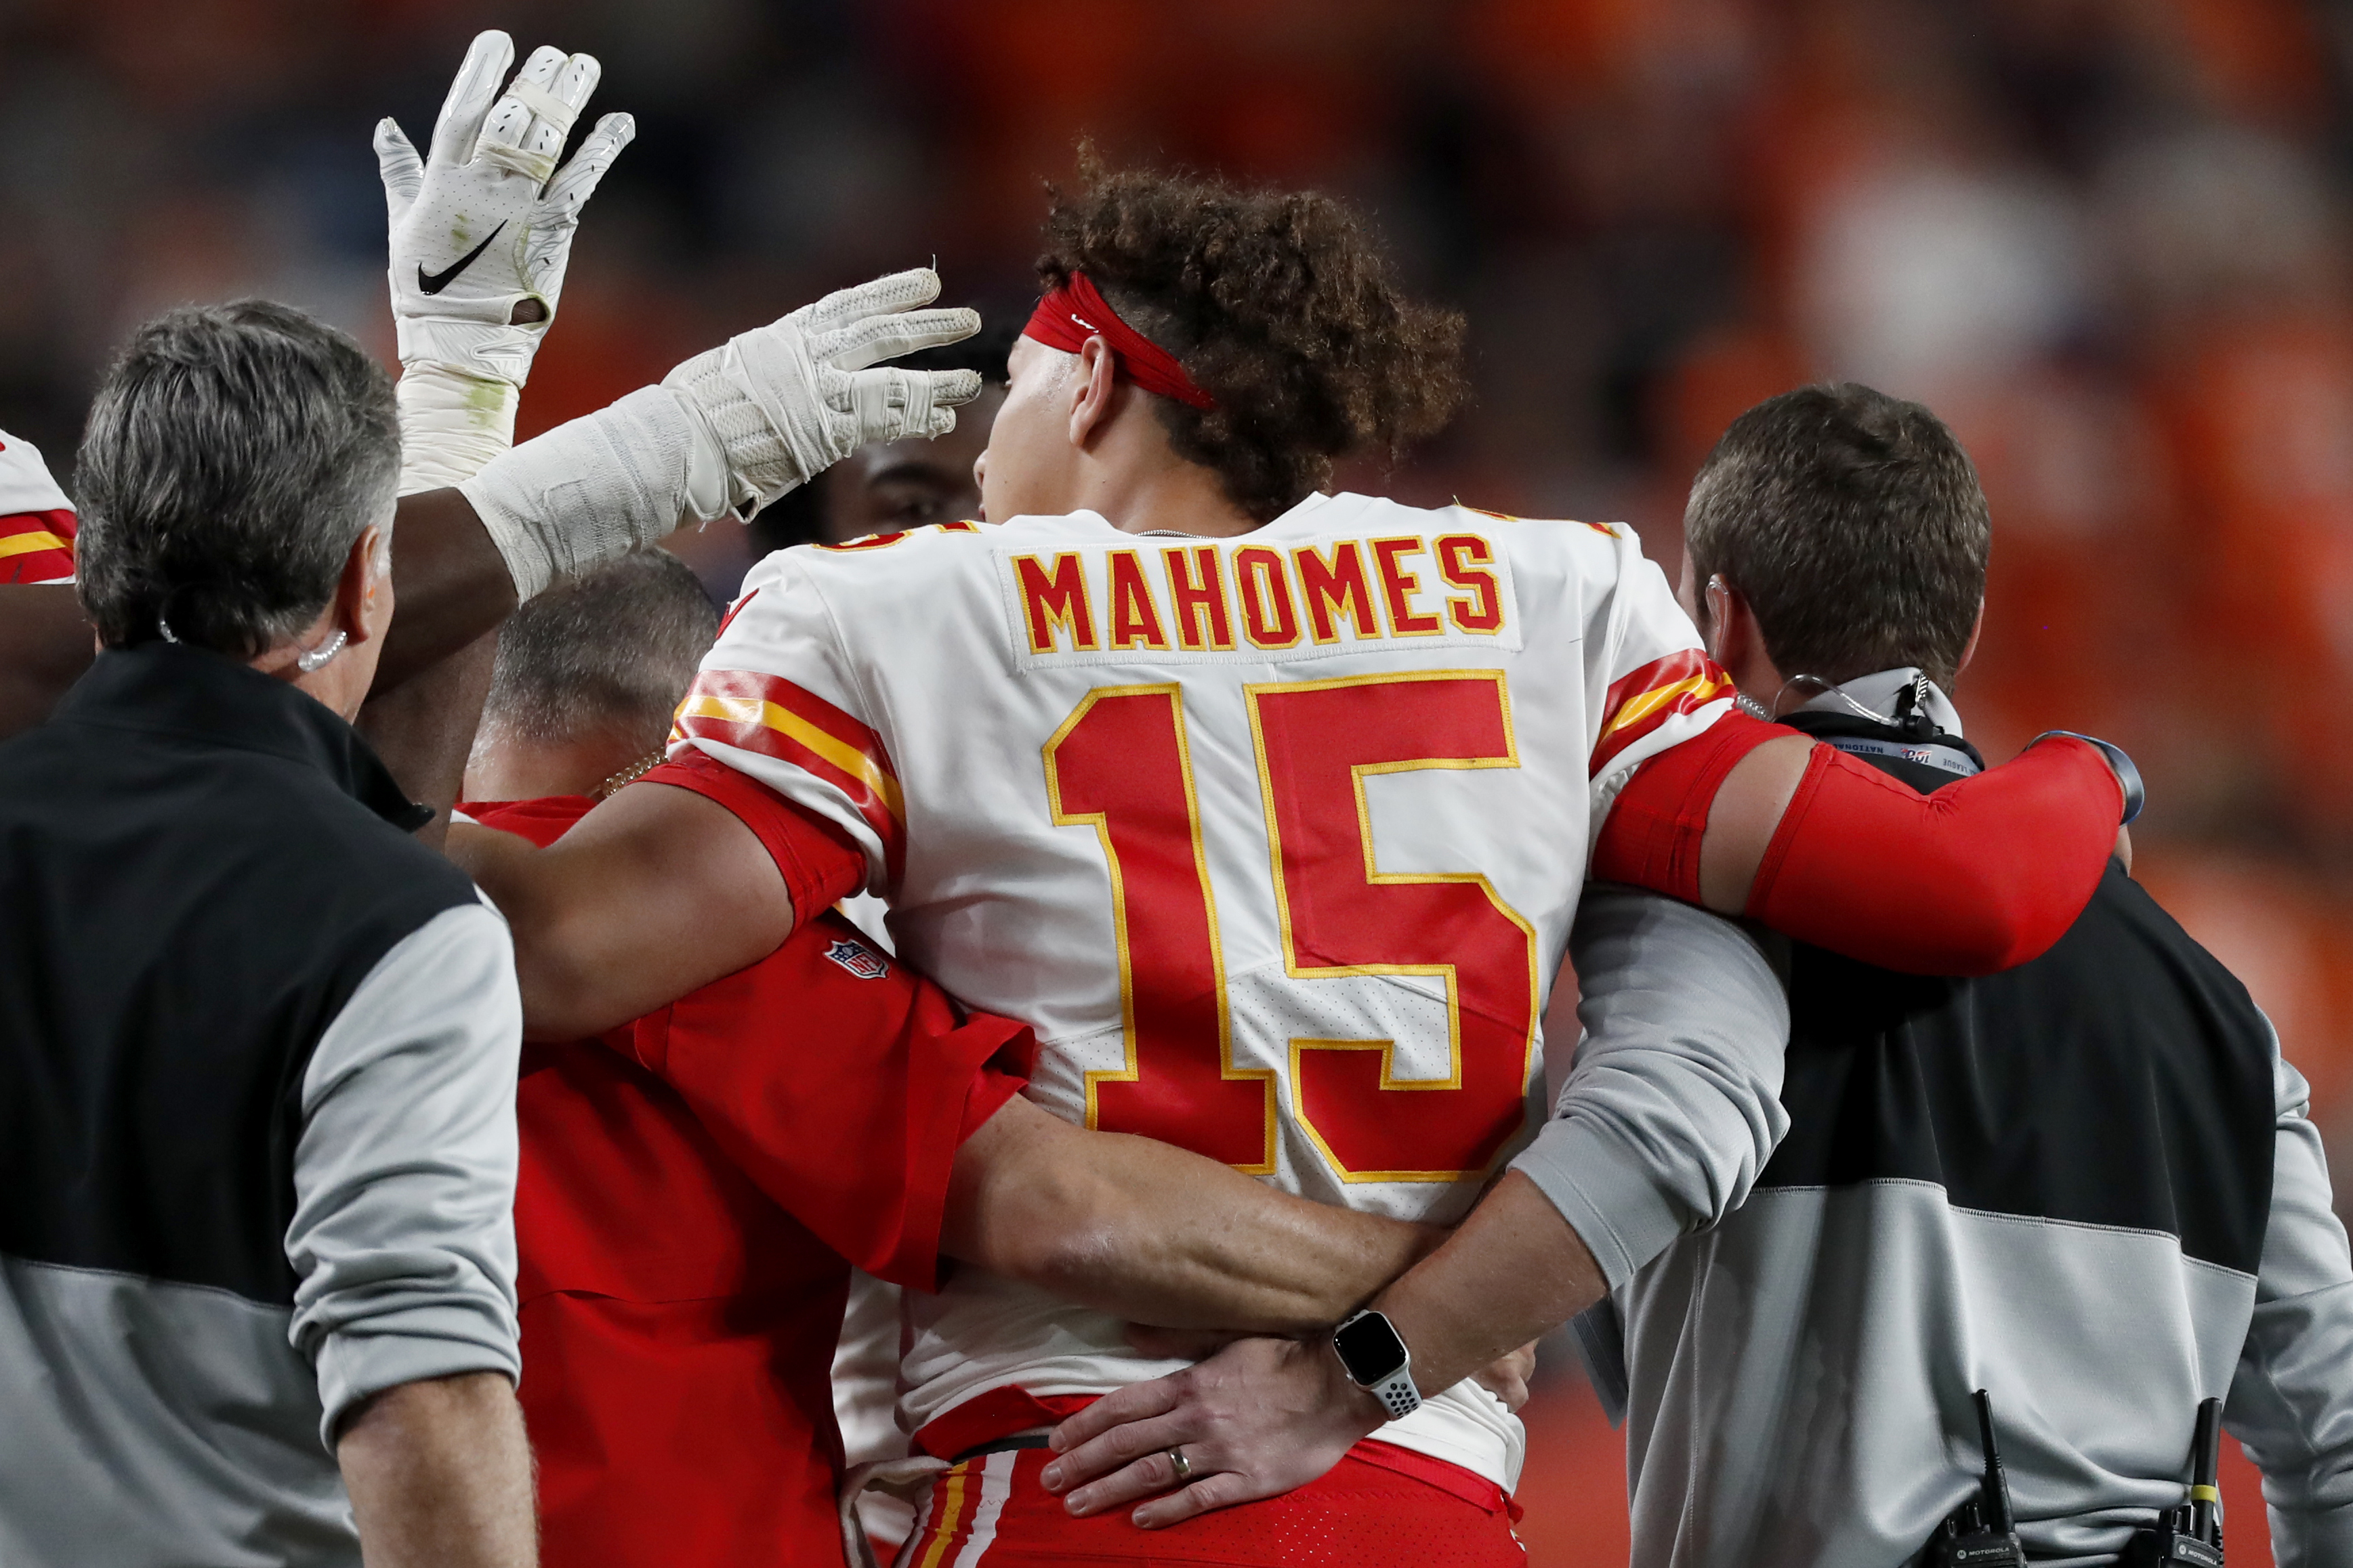 Chiefs quarterback Patrick Mahomes is helped off the field after getting injured against the Broncos on Thursday in Denver. (AP Photo/David Zalubowski)